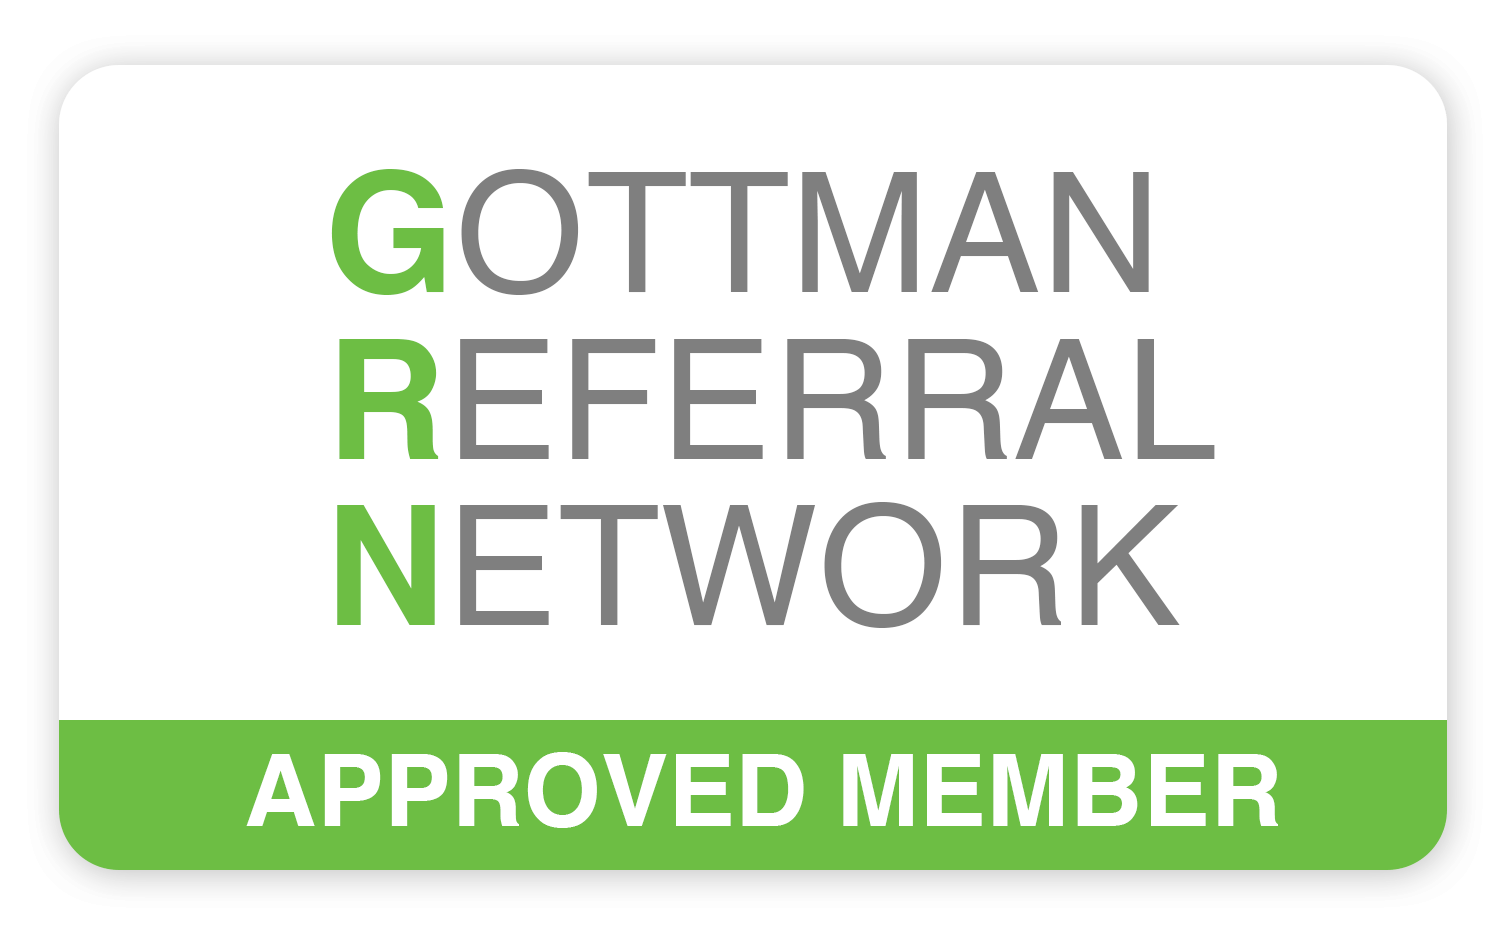 Michelle L. Bancroft's profile on the Gottman Referral Network